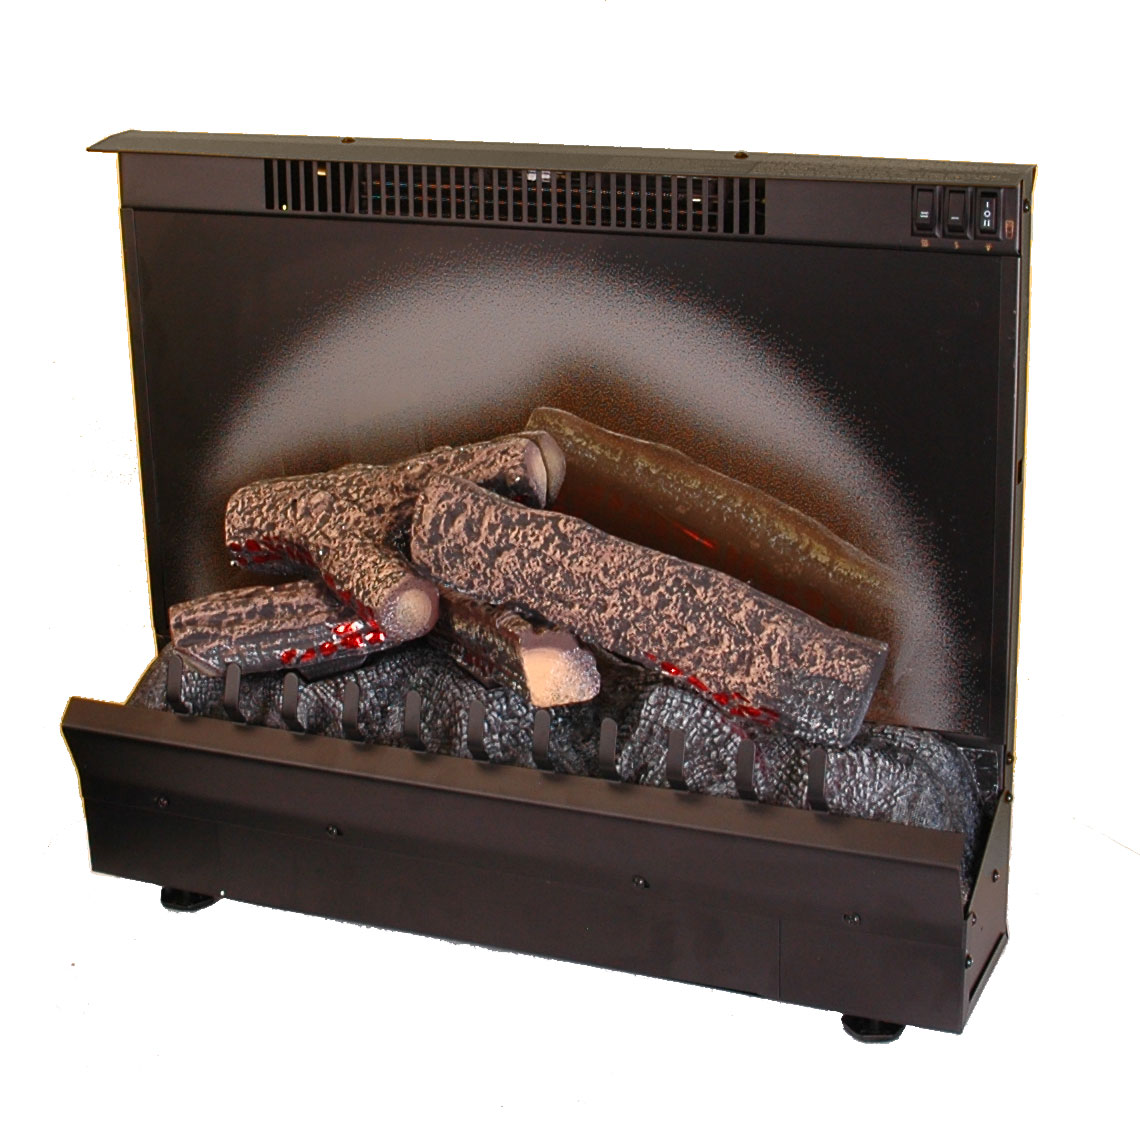 Dimplex 23 in. Electric Fireplace Insert